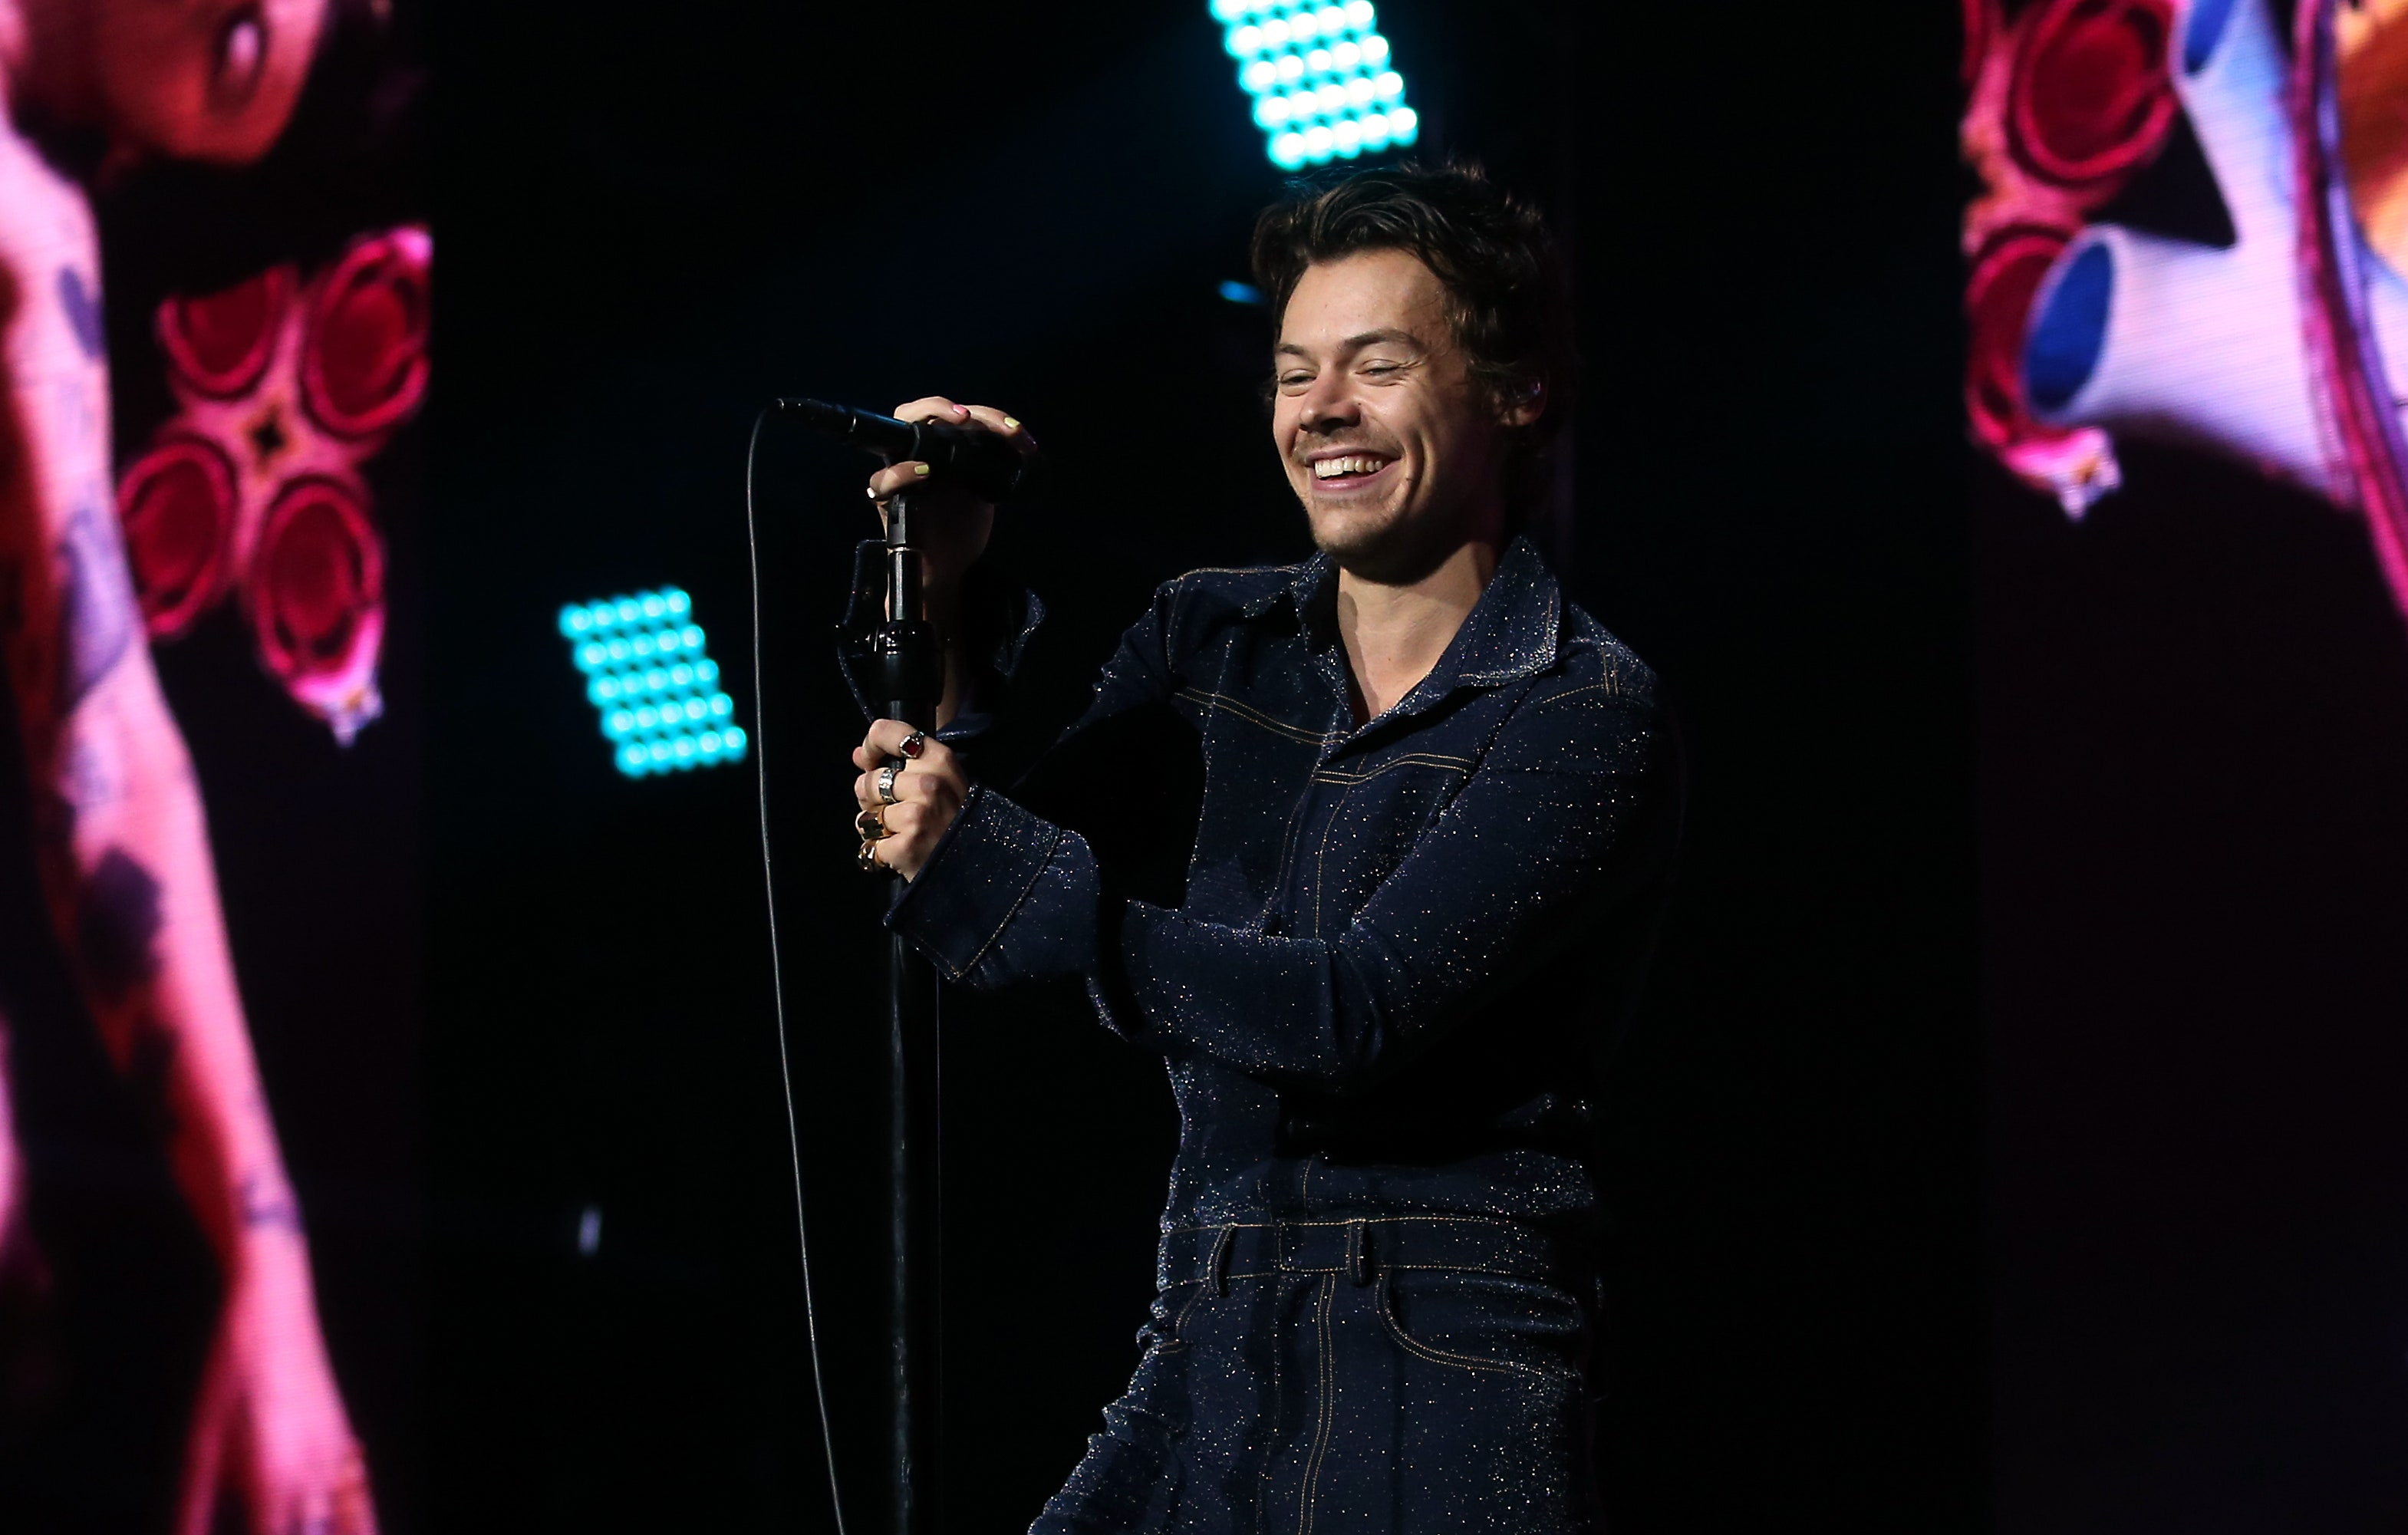 Harry Styles Holding A Microphone Harry Styles Jingle Bell Ball 2019 2966843 Hd Wallpaper Backgrounds Download